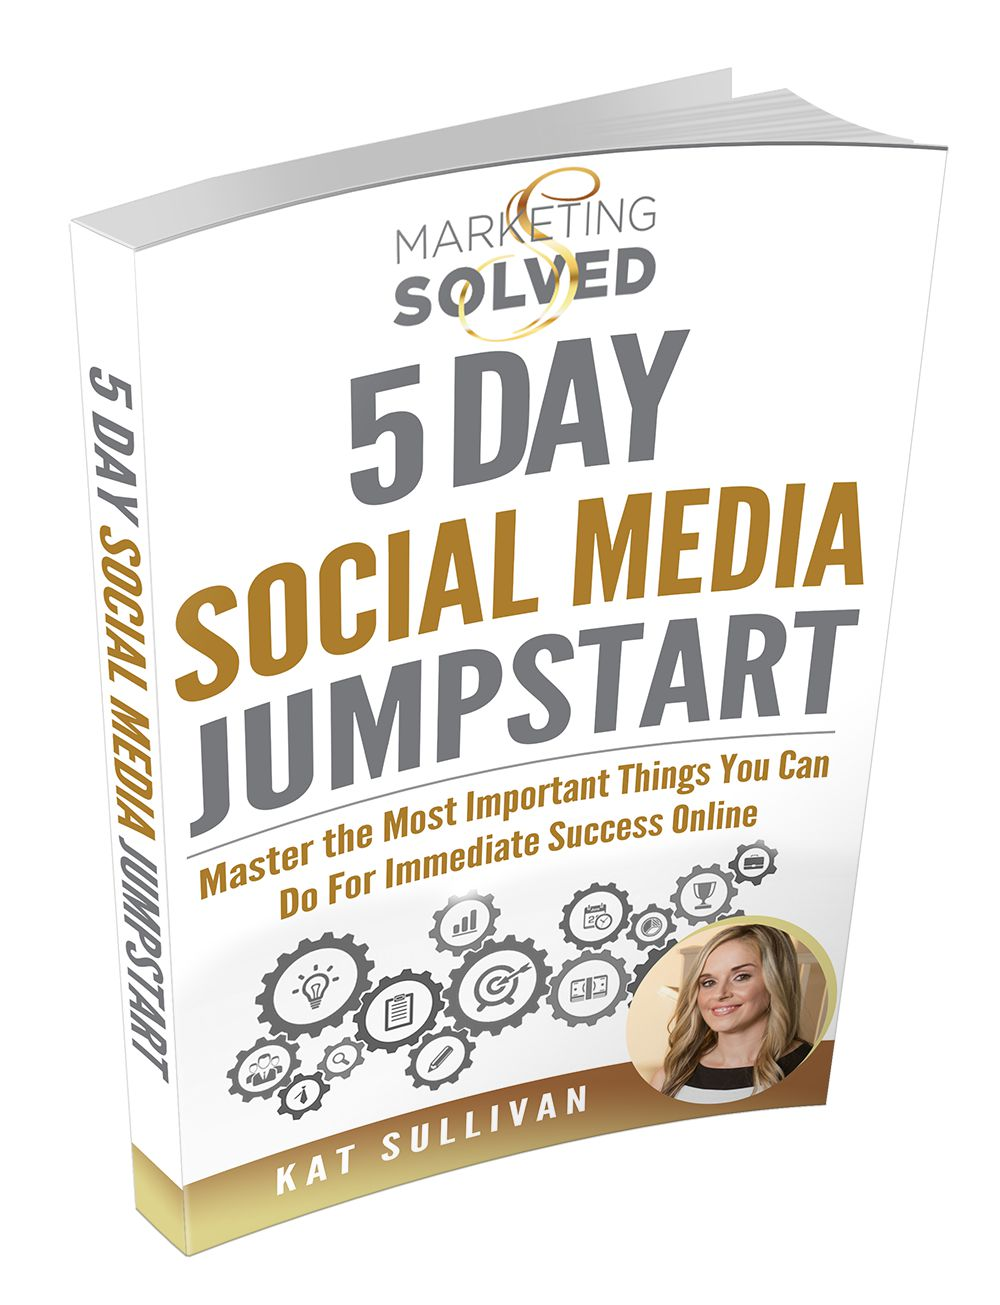 5 Day Social Media Jumpstart